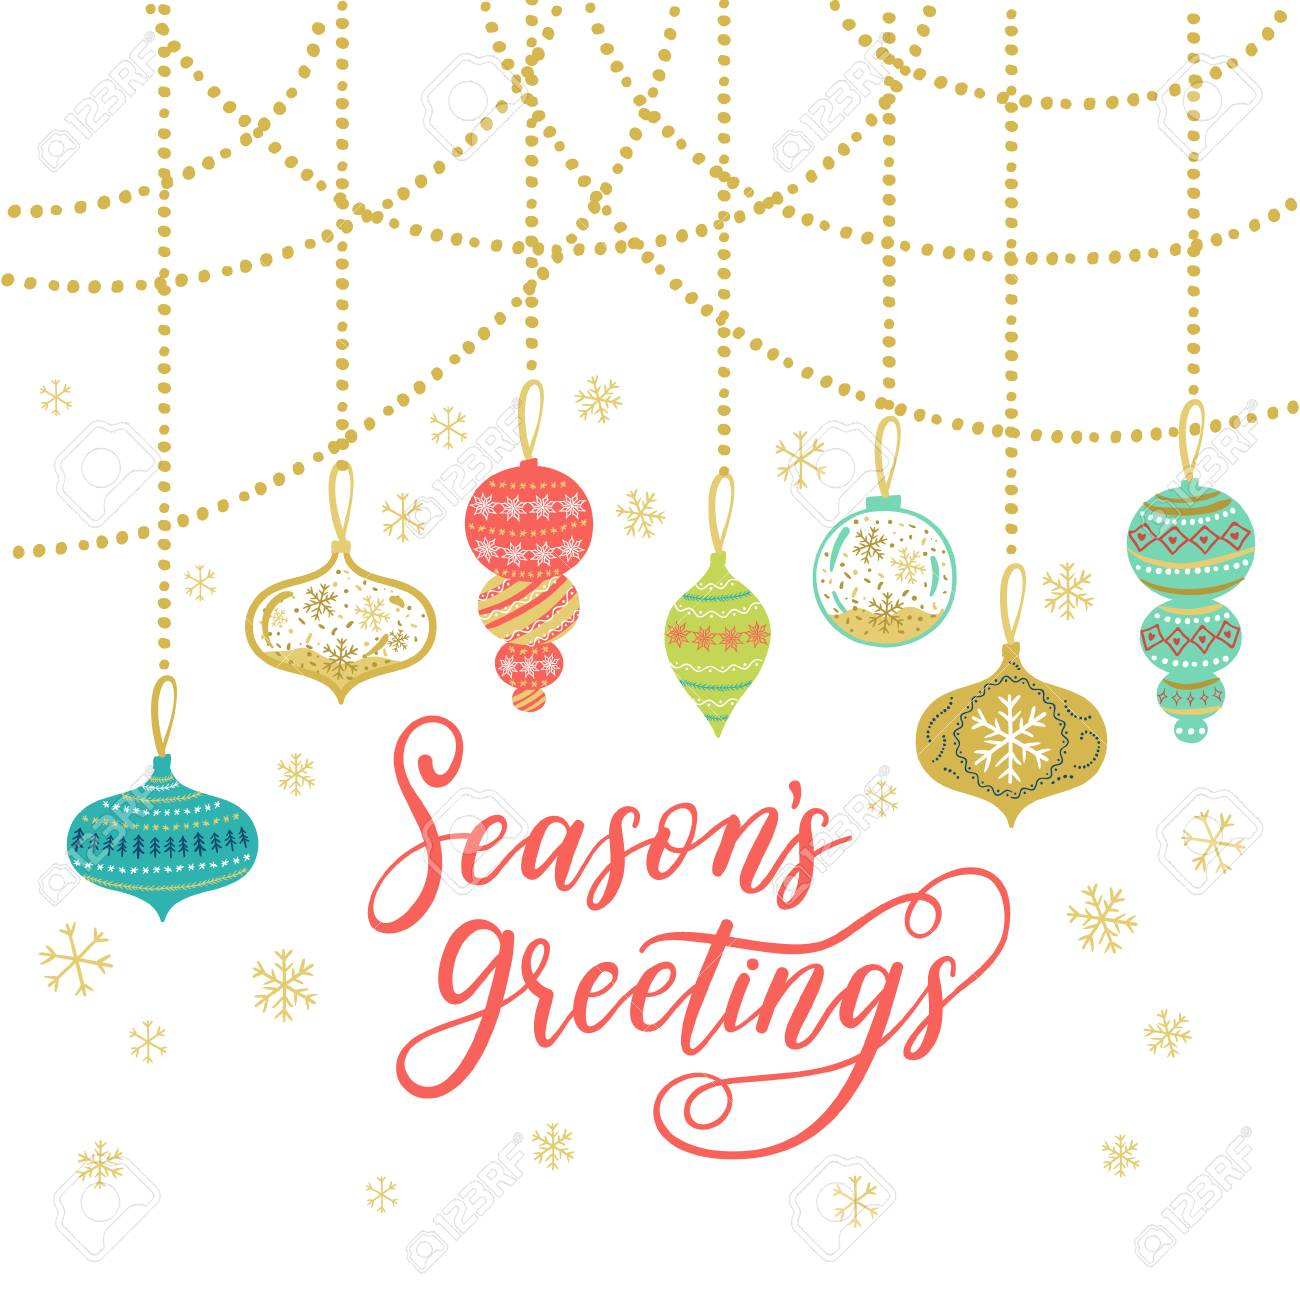 Seasons greetings greeting card vector winter holiday background seasons greetings greeting card vector winter holiday background with hand lettering calligraphy confetti kristyandbryce Image collections